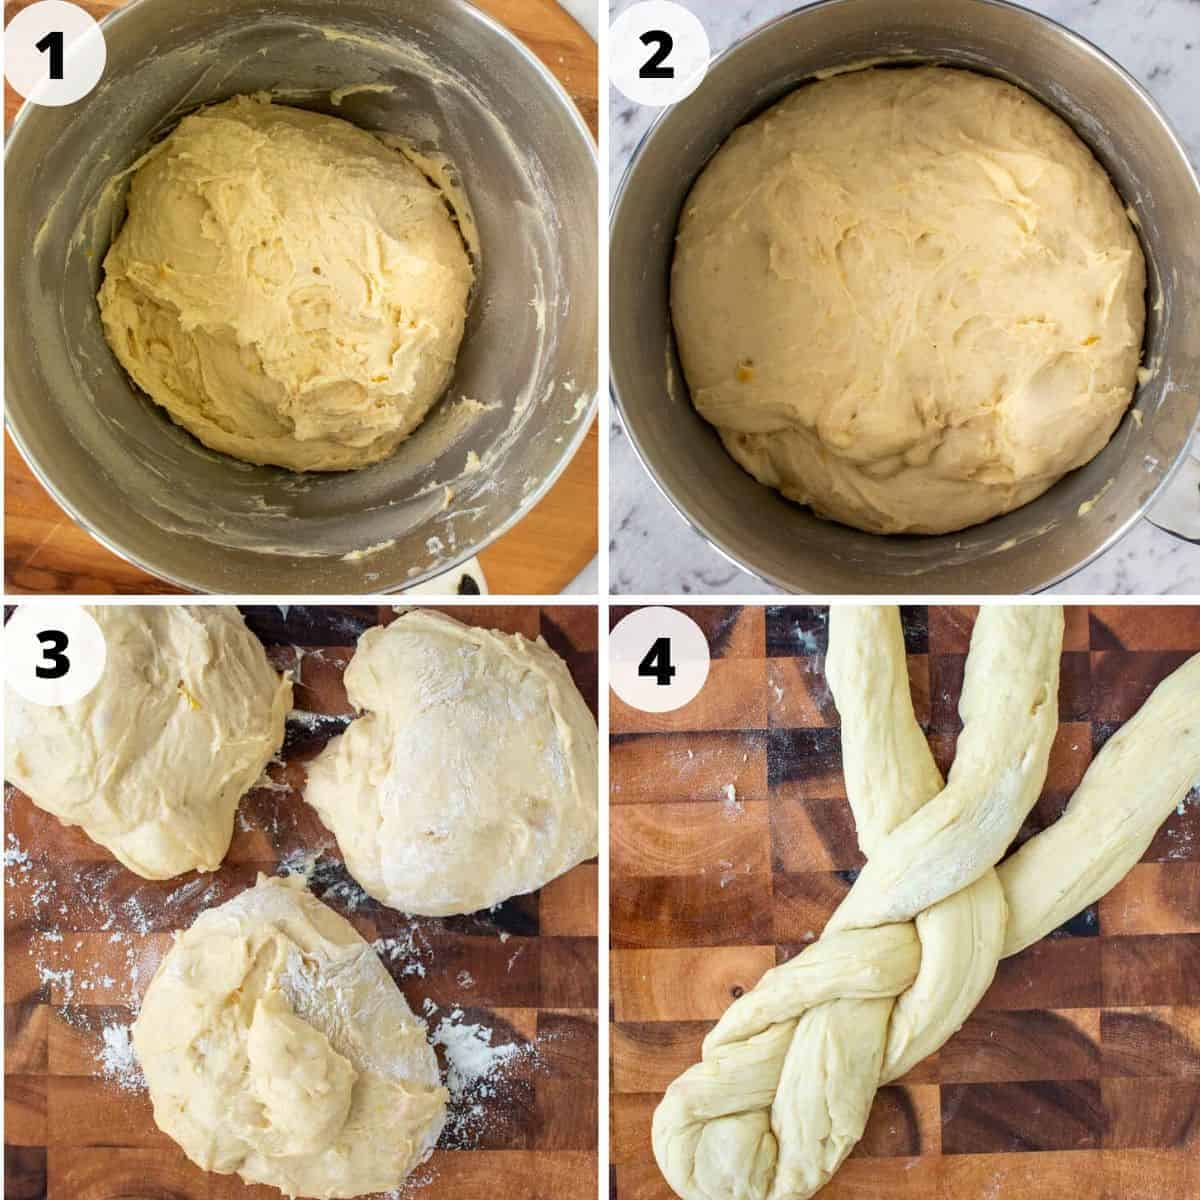 Four images: image 1- bread dough in stainless steel bowl; image 2 - risen bread dough in stainless steel bowl; image 3 - three balls of bread dough on wooden board; image 4 - three bread dough strands half plaited on wooden board